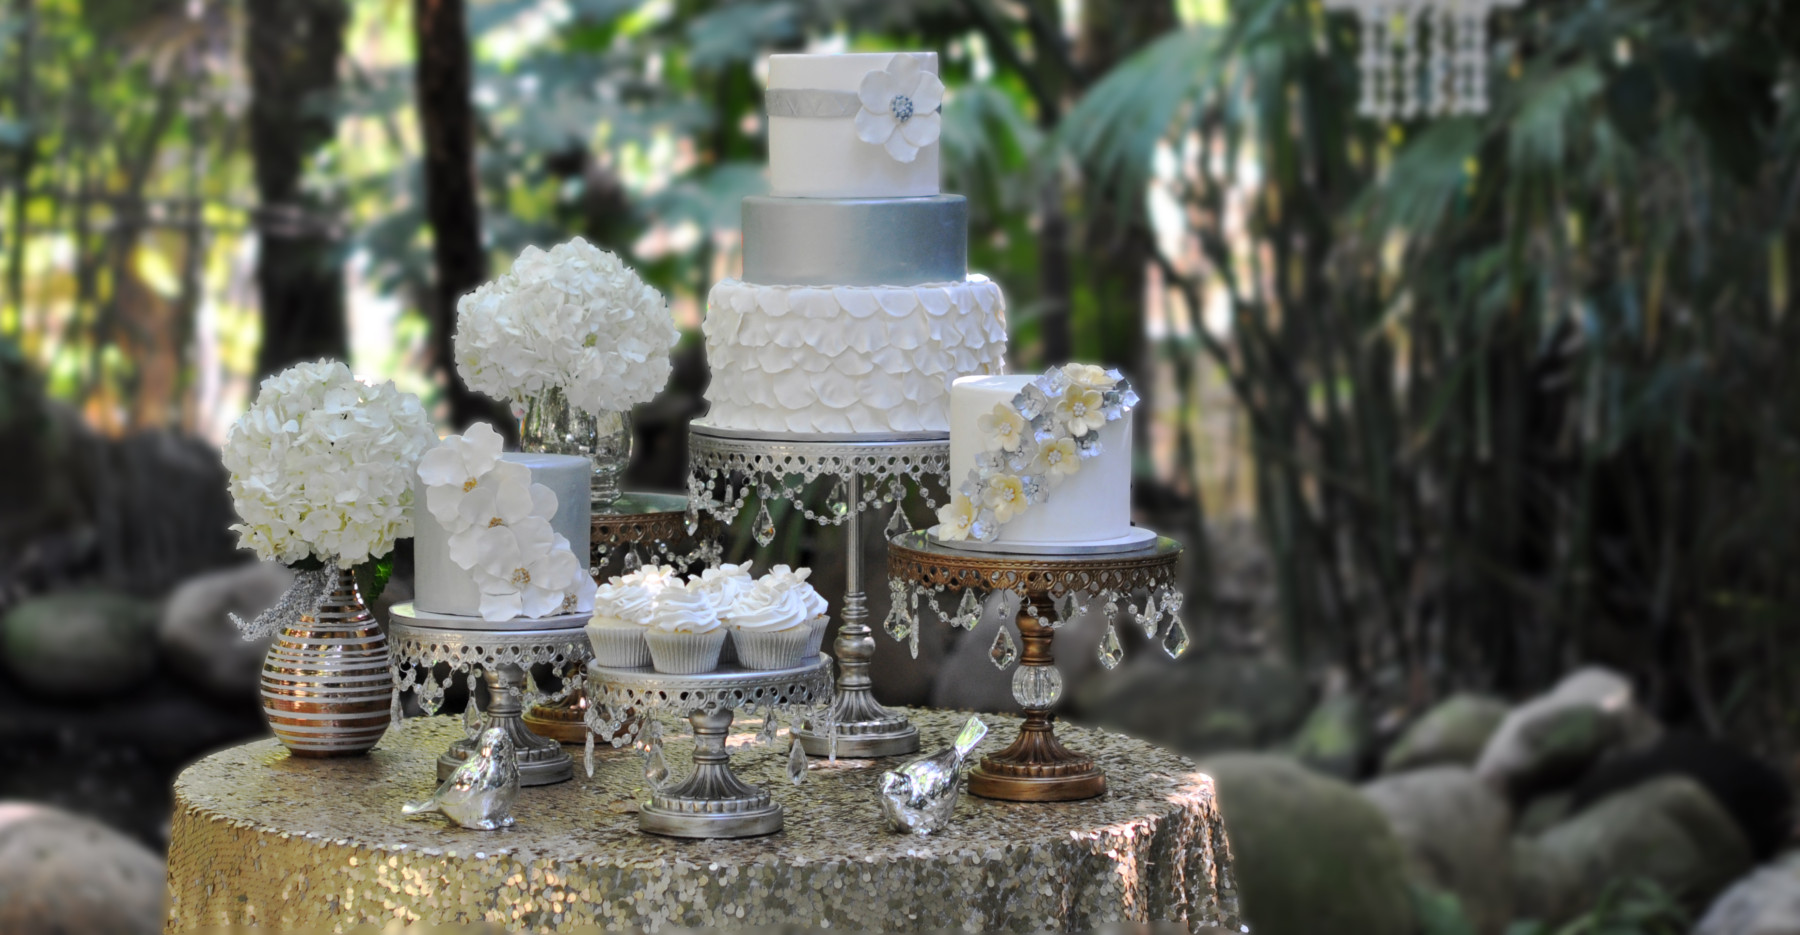 Our Cupcakery Wedding Cake